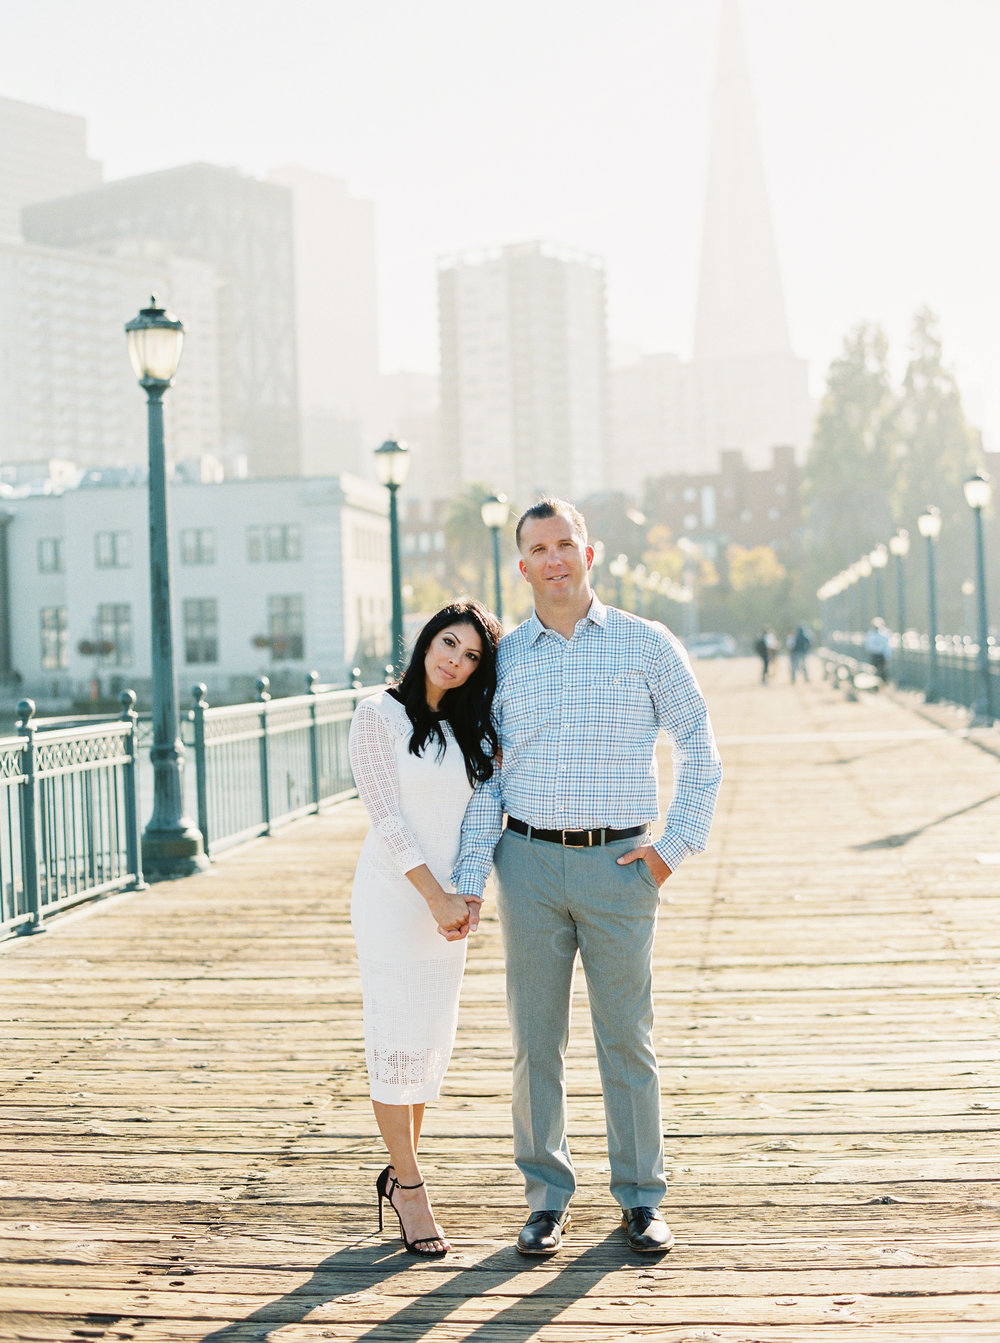 Suto-baths-engagement-photography-113.jpg